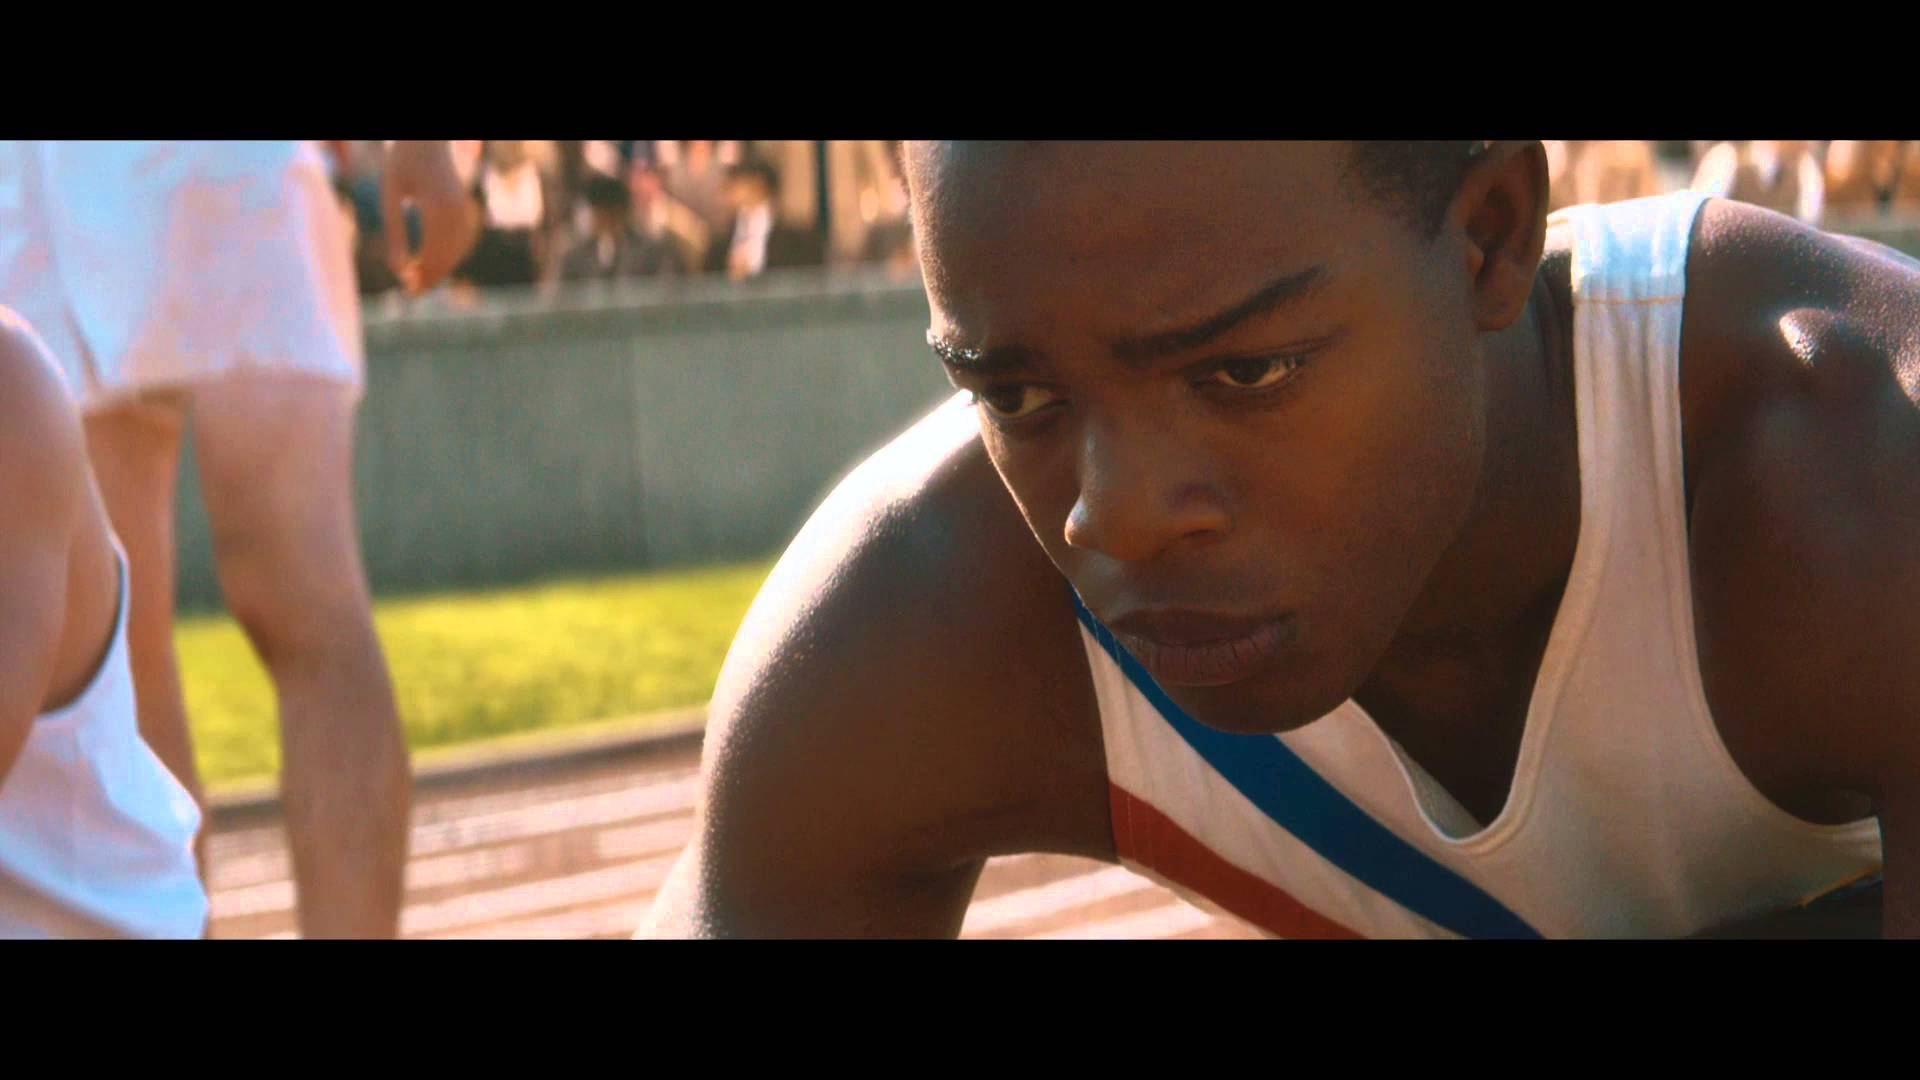 RACE – 'Inspire' TV Spot #1 – In Theaters February 19